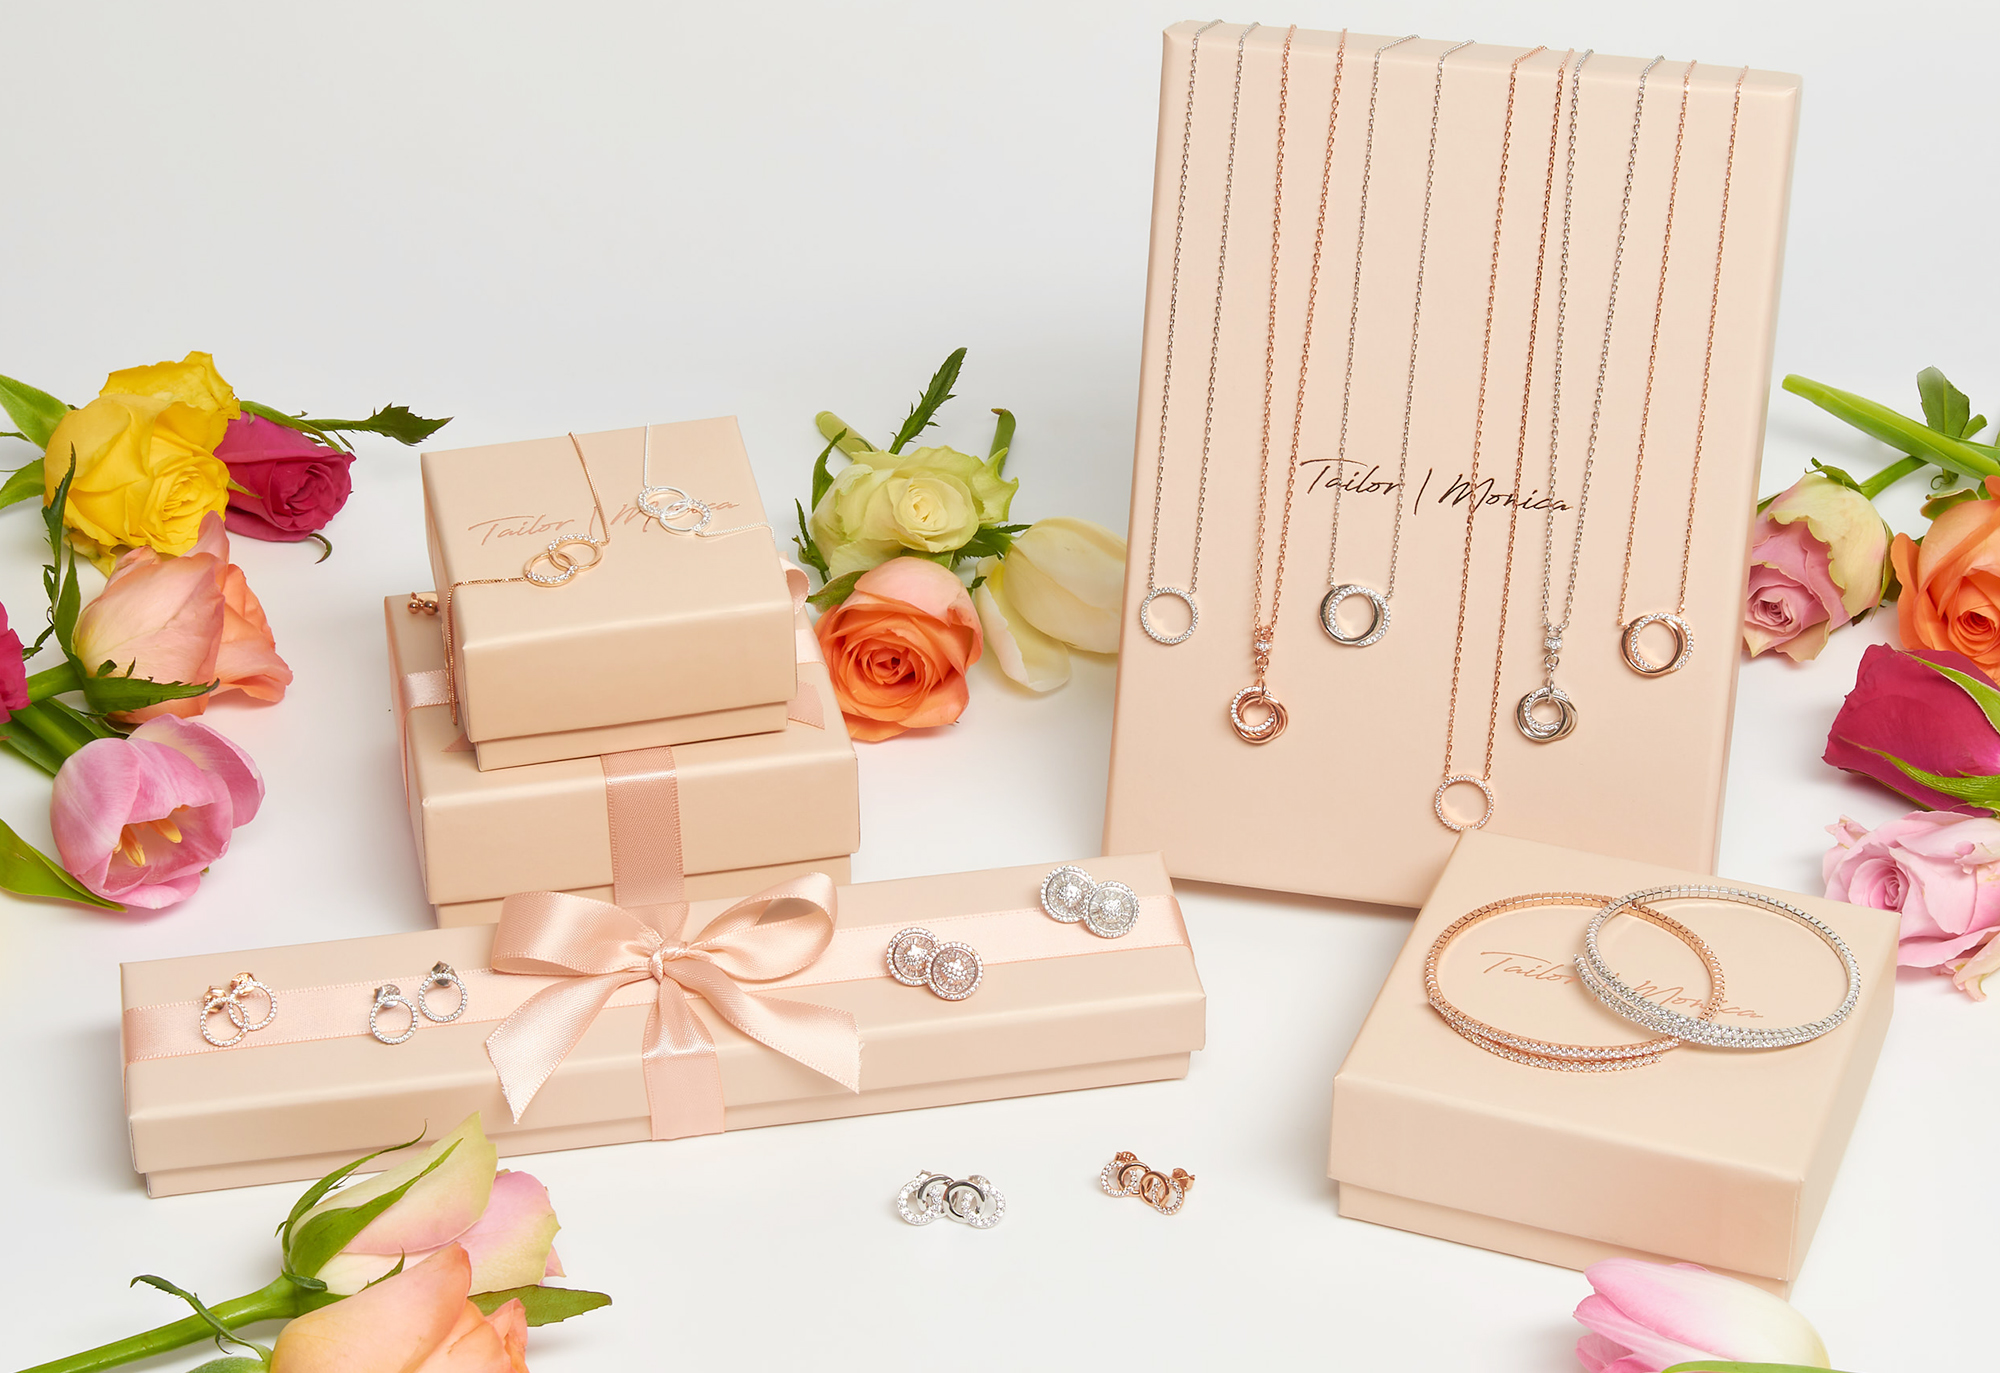 Jewellery photographed for advertising usage by professional photographer Ian Knaggs